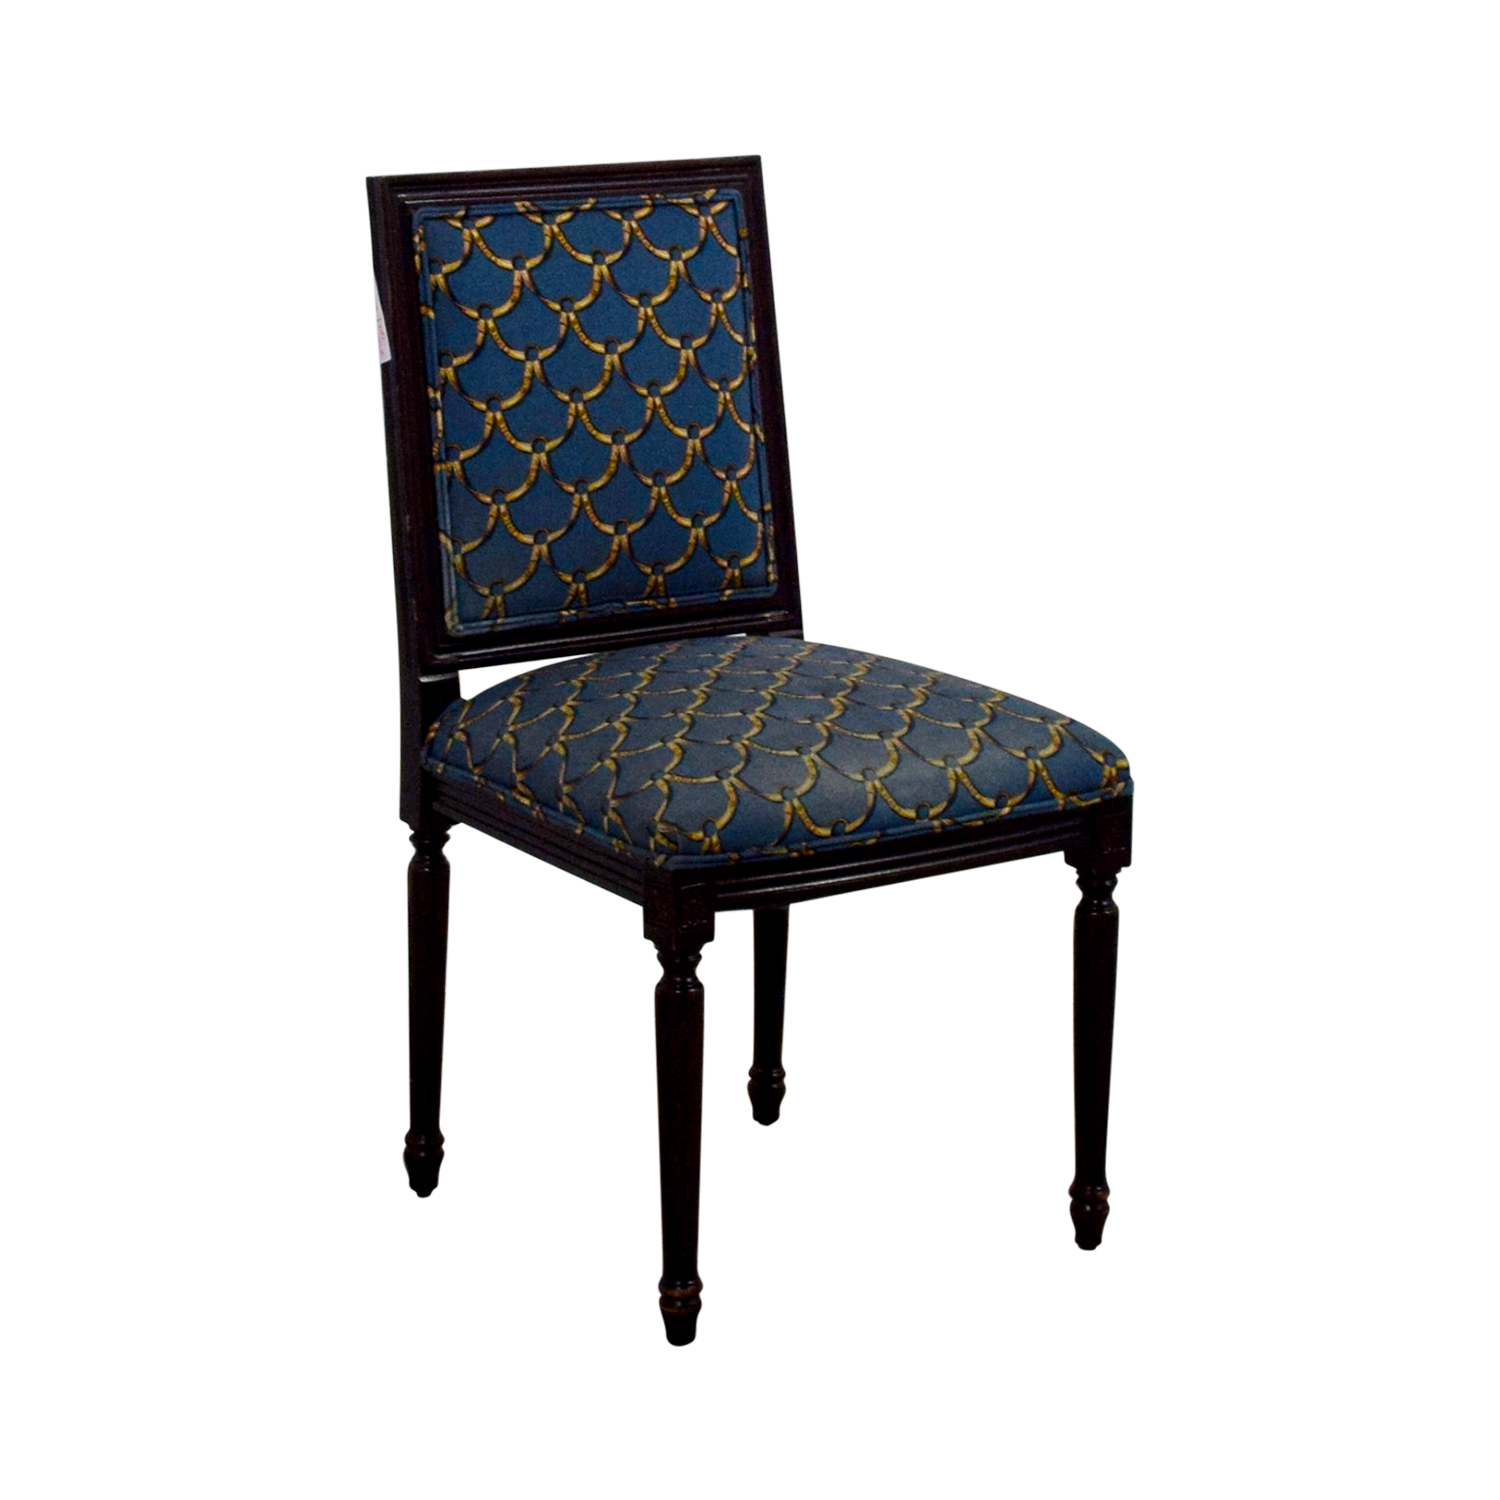 ballard designs upholstered dining chairs thinking chair for sale 88 off blue and gold